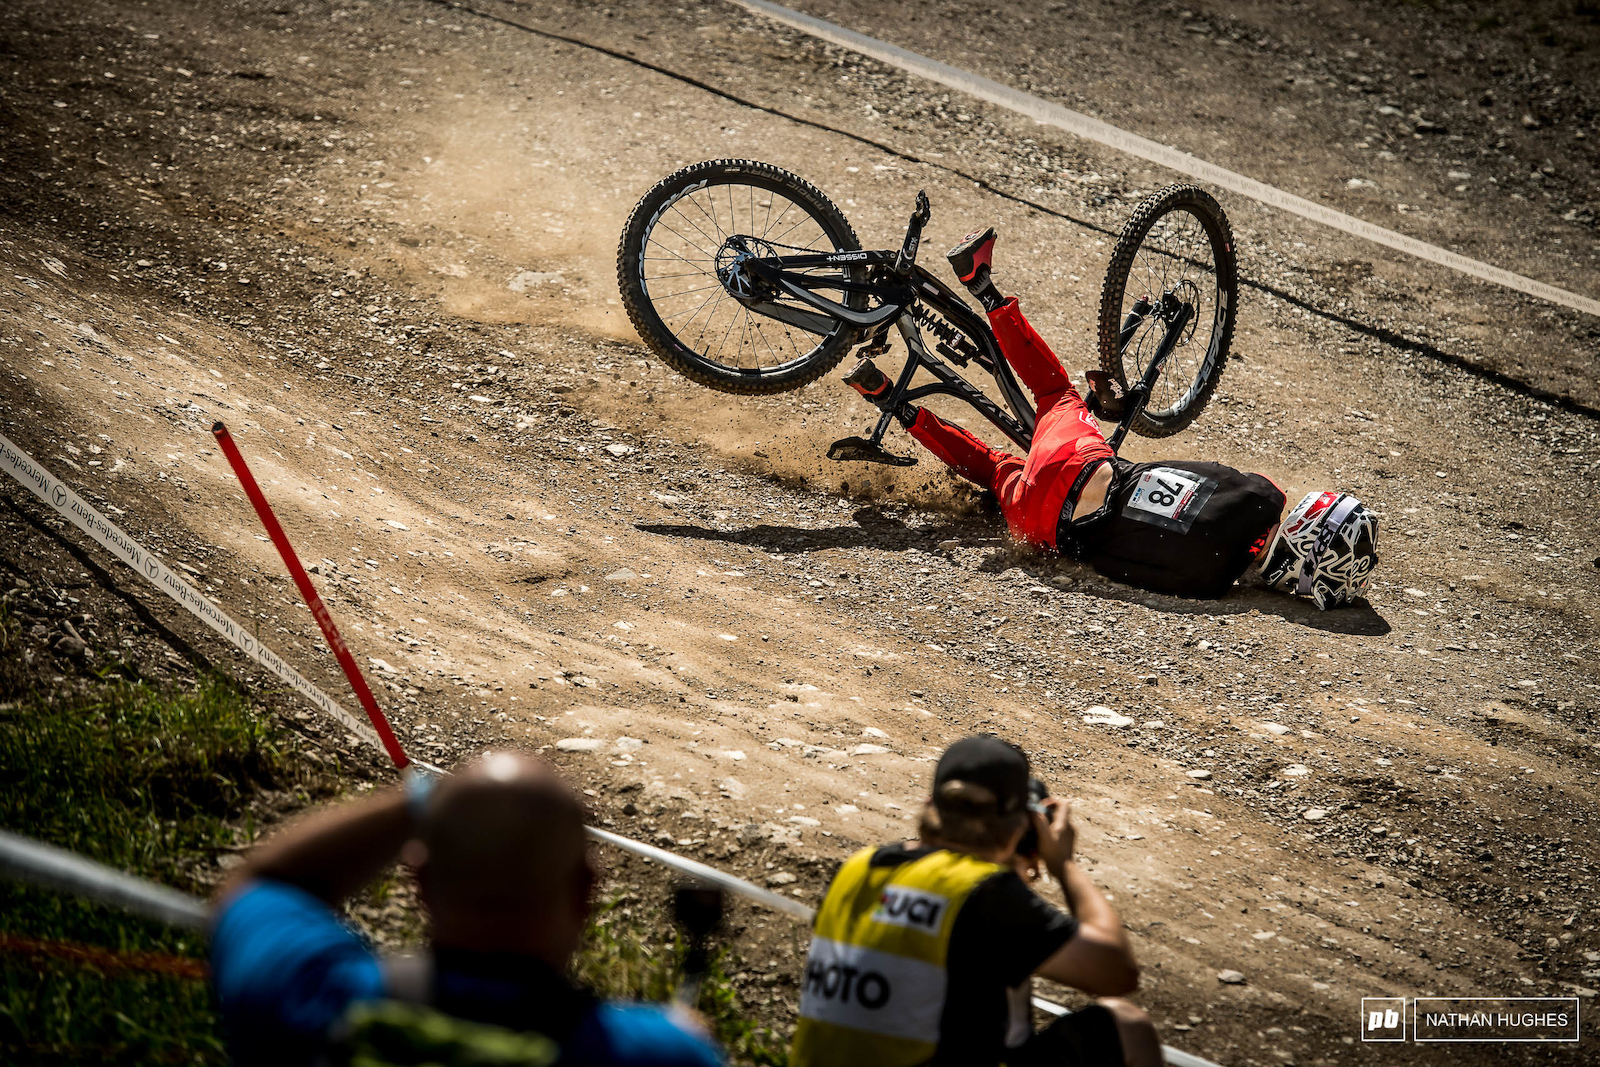 Canadian national champ Kirk McDowall crashed off the shark fin before the finish area and it was a hard hit. Thankfully he walked away largely unscathed.